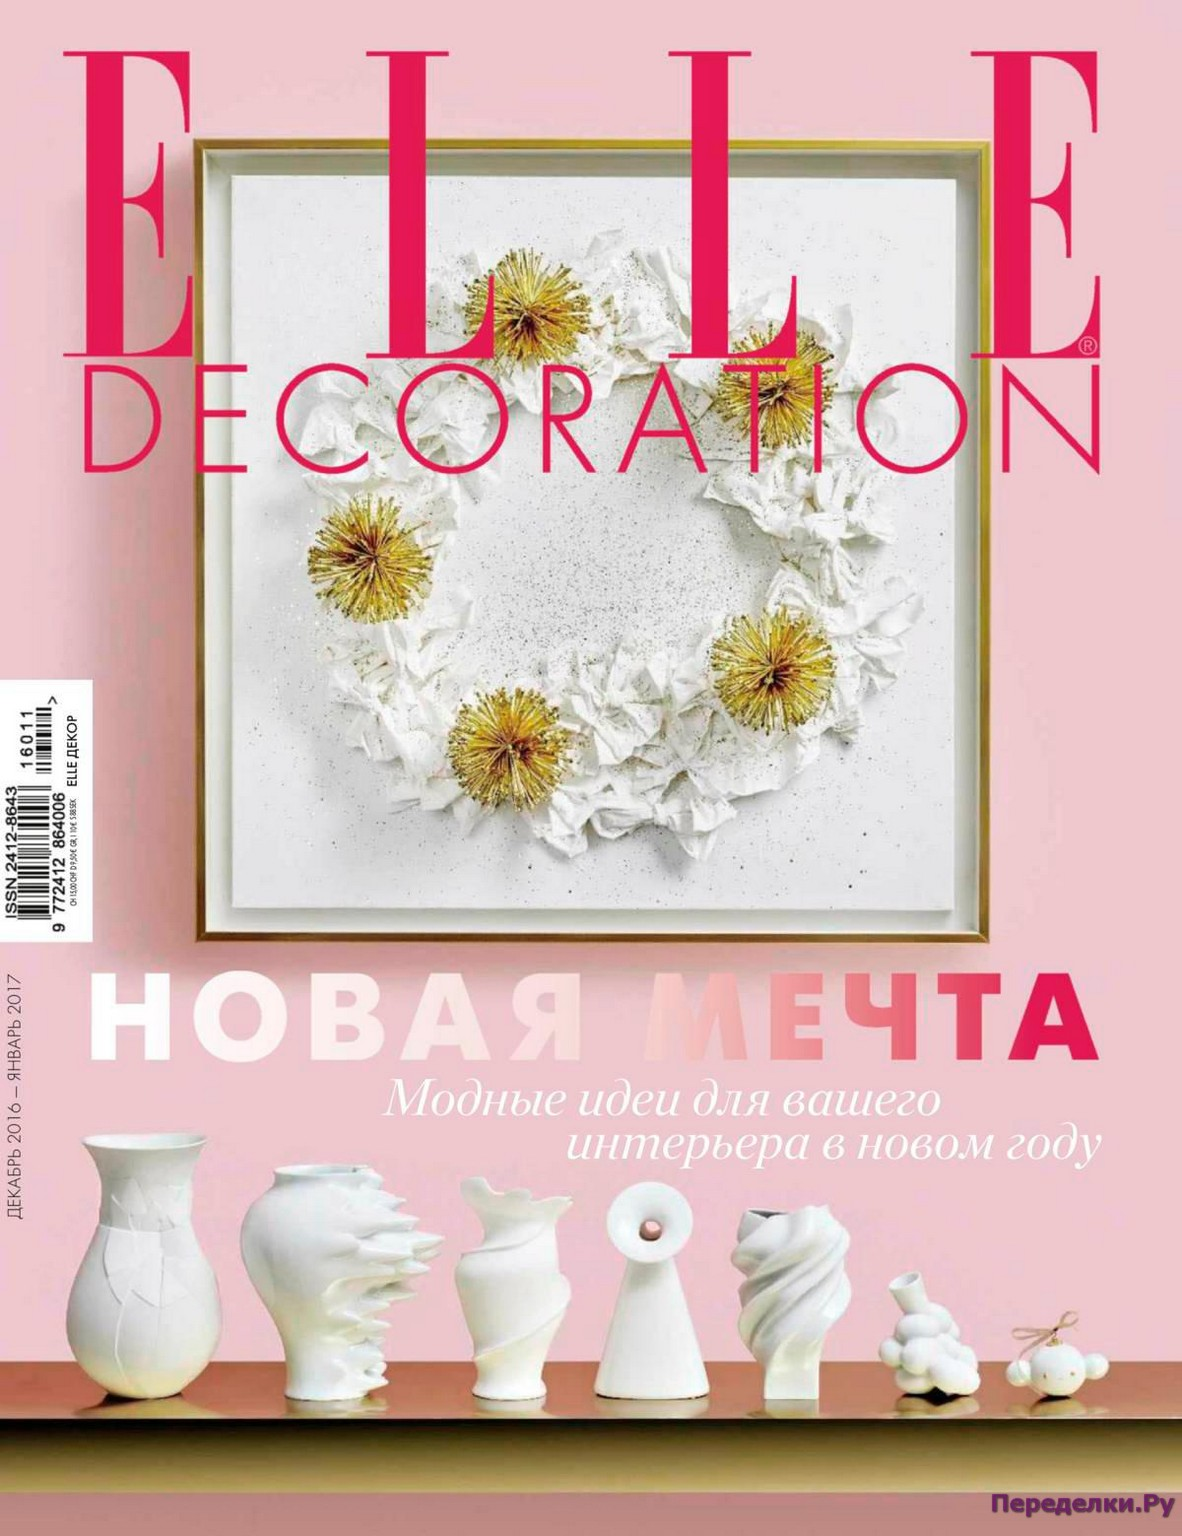 Elle decoration 12 1 2016 2017